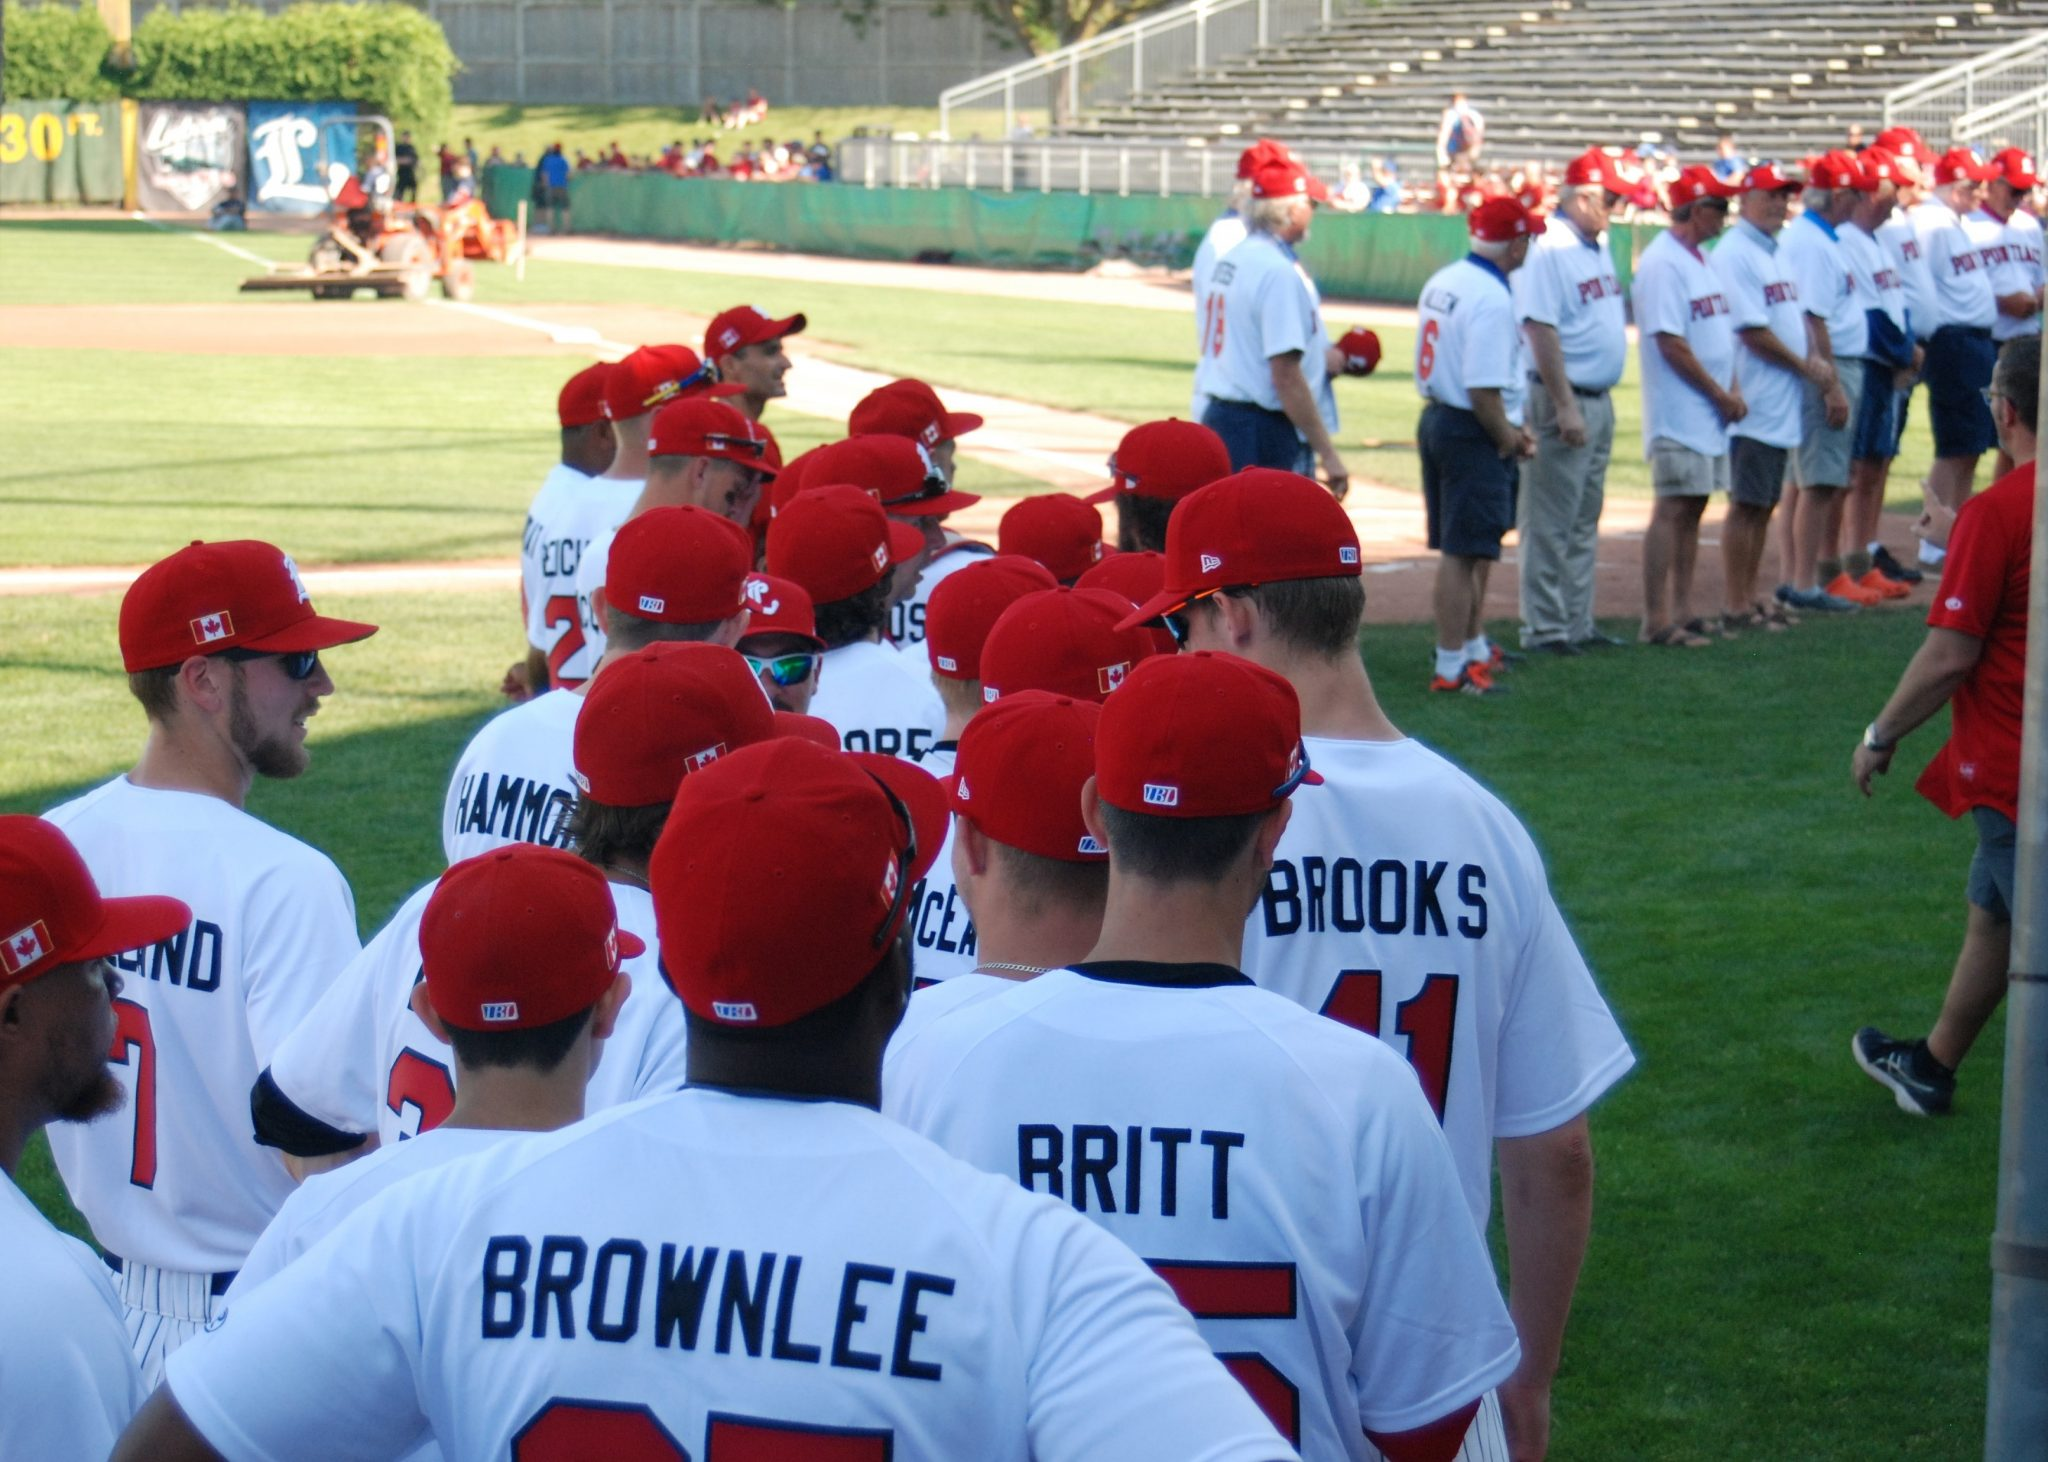 The 2018 London Majors Team in line to stand with London Majors alumni. All of them are wearing red and white London Pontiac Uniforms.